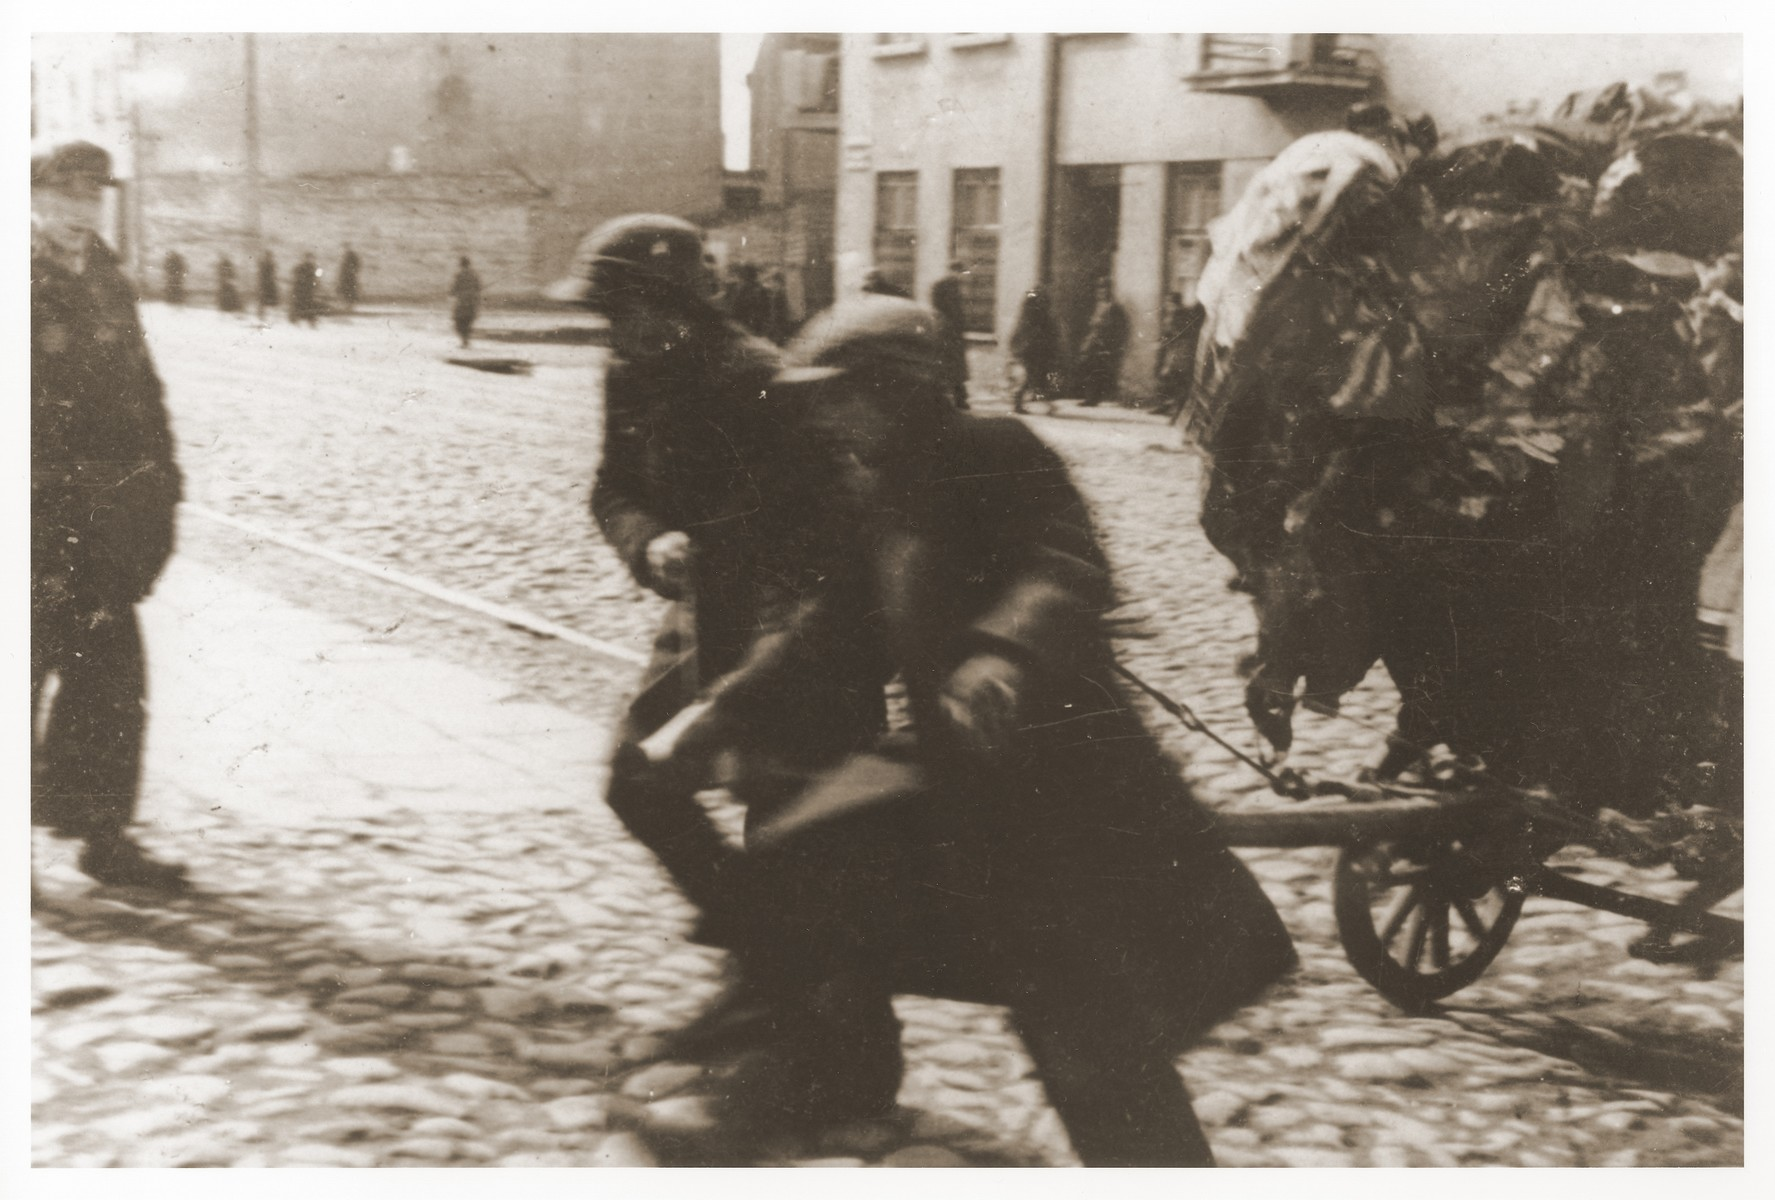 Two men haul a full cart along a cobblestone street in the Lodz ghetto.